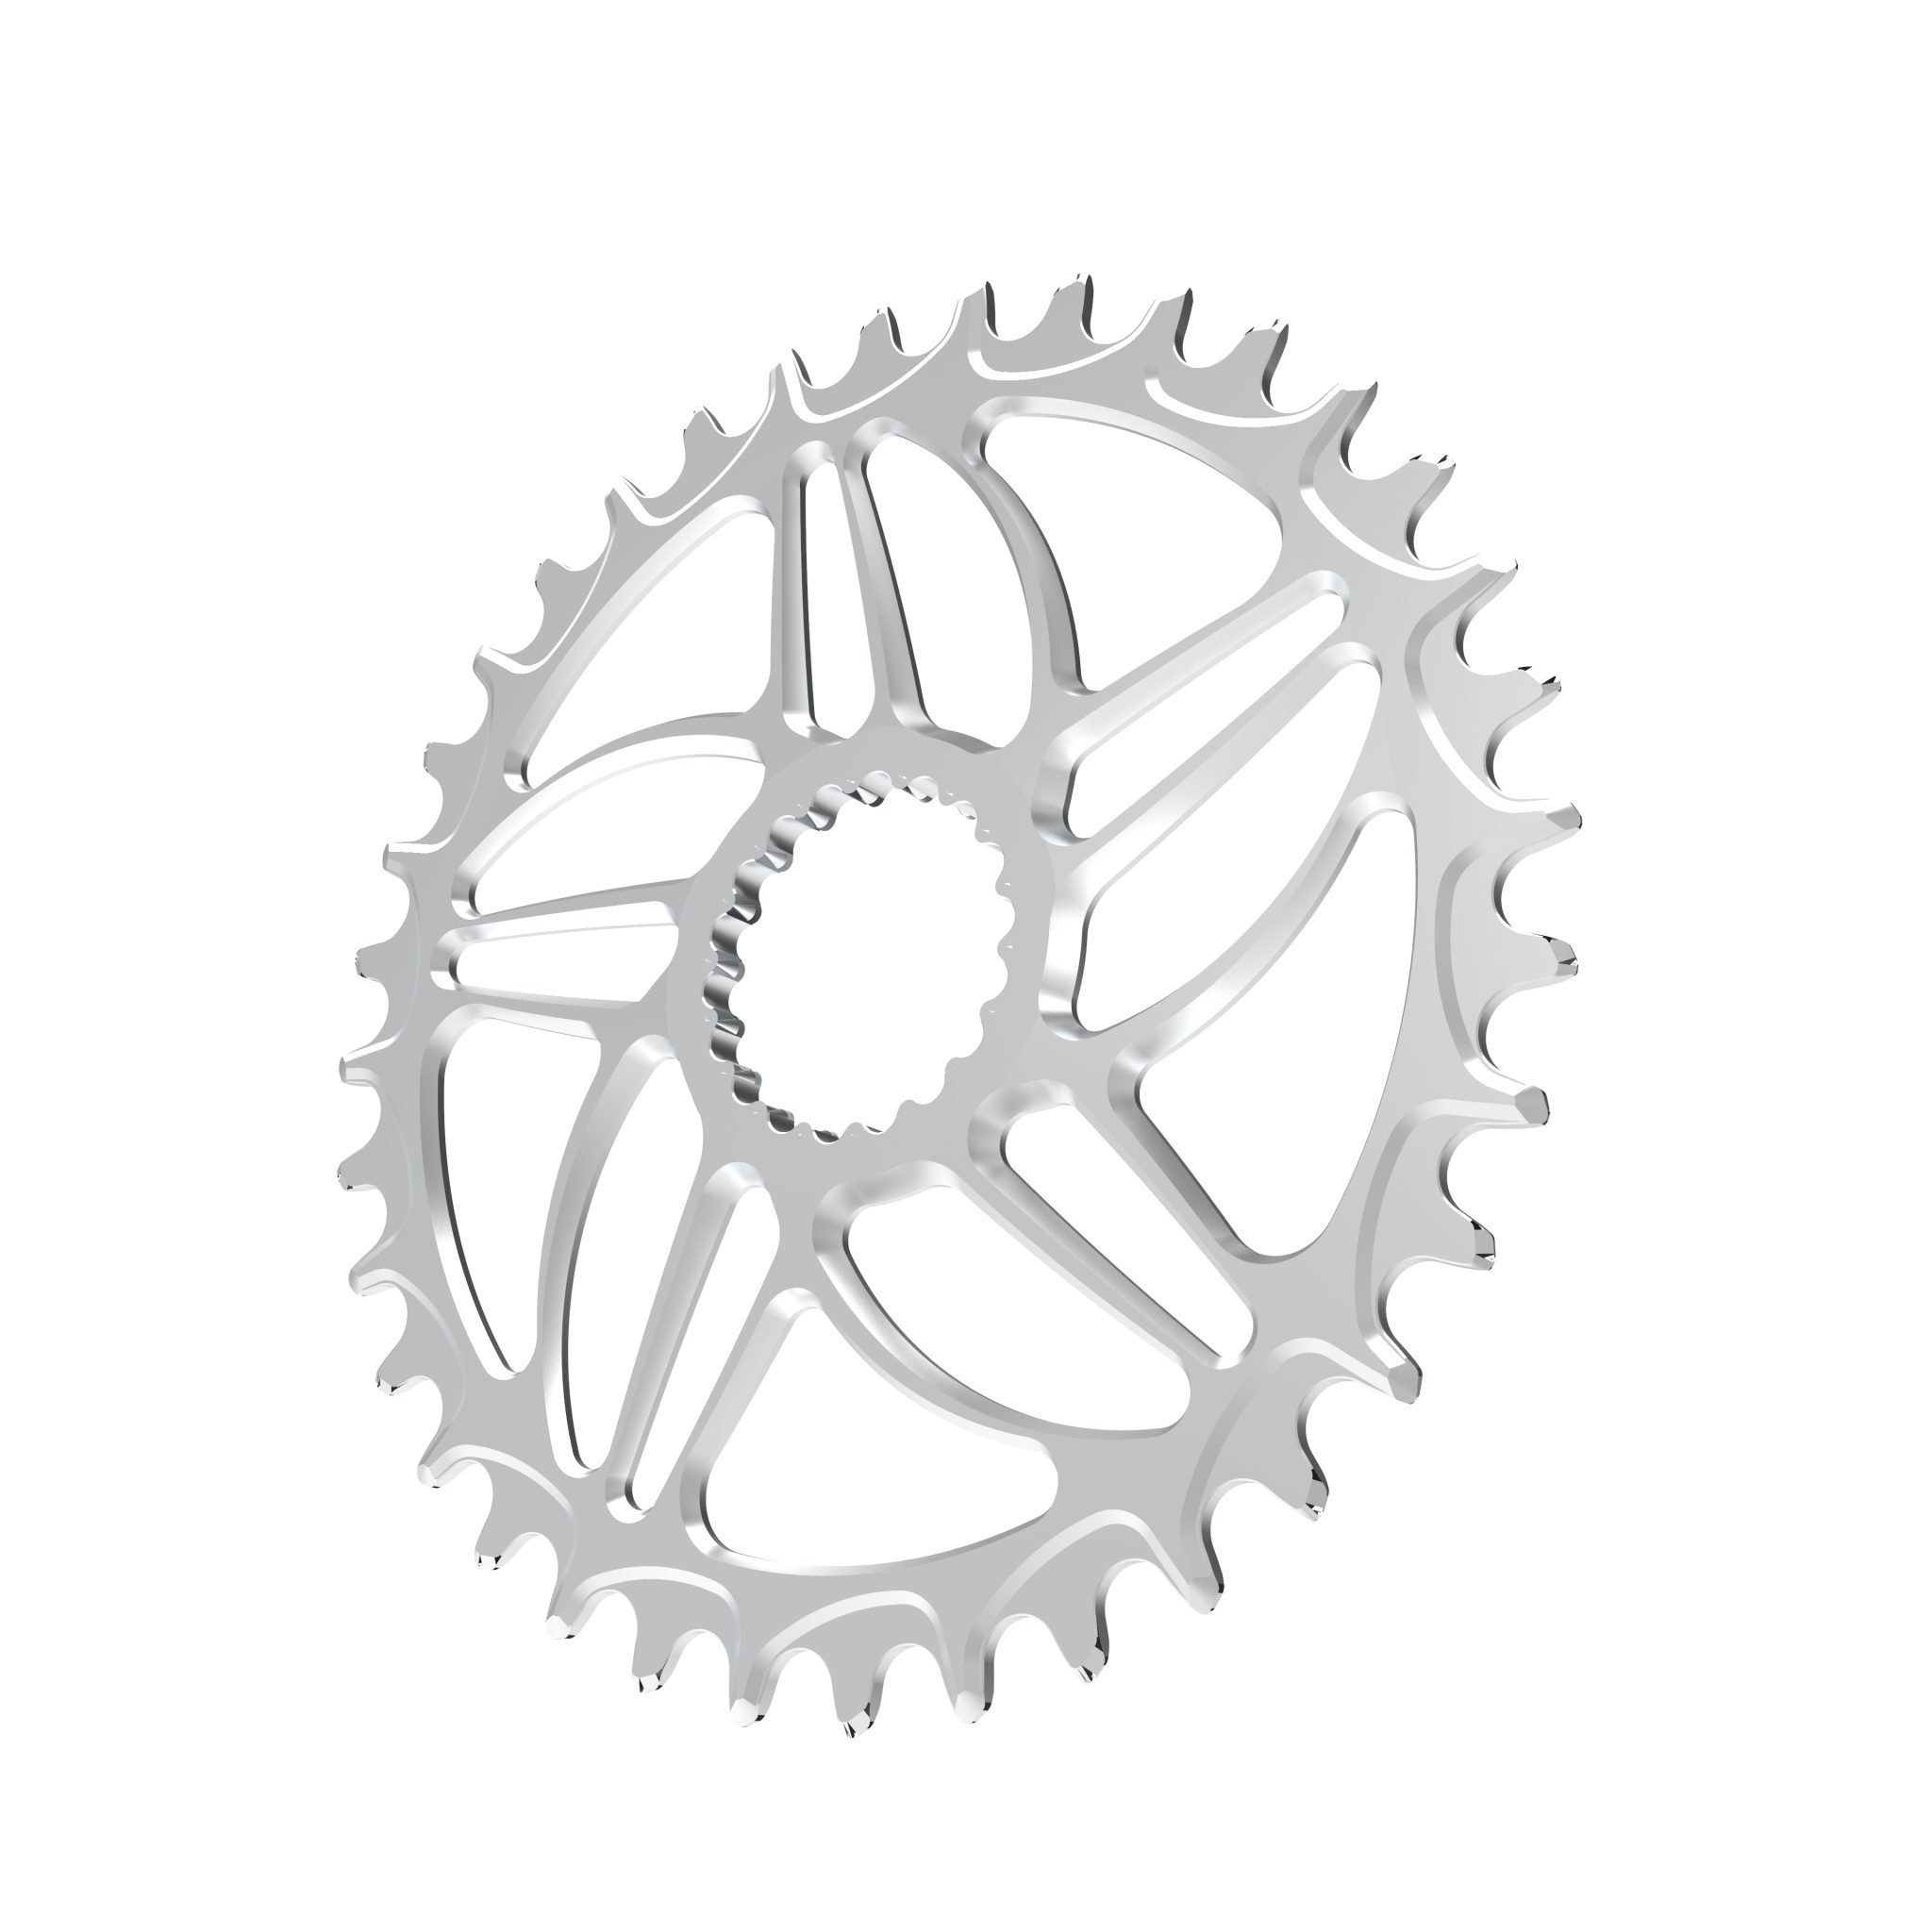 36T_R_Cannondale_BOOST_Silver.393 (1)